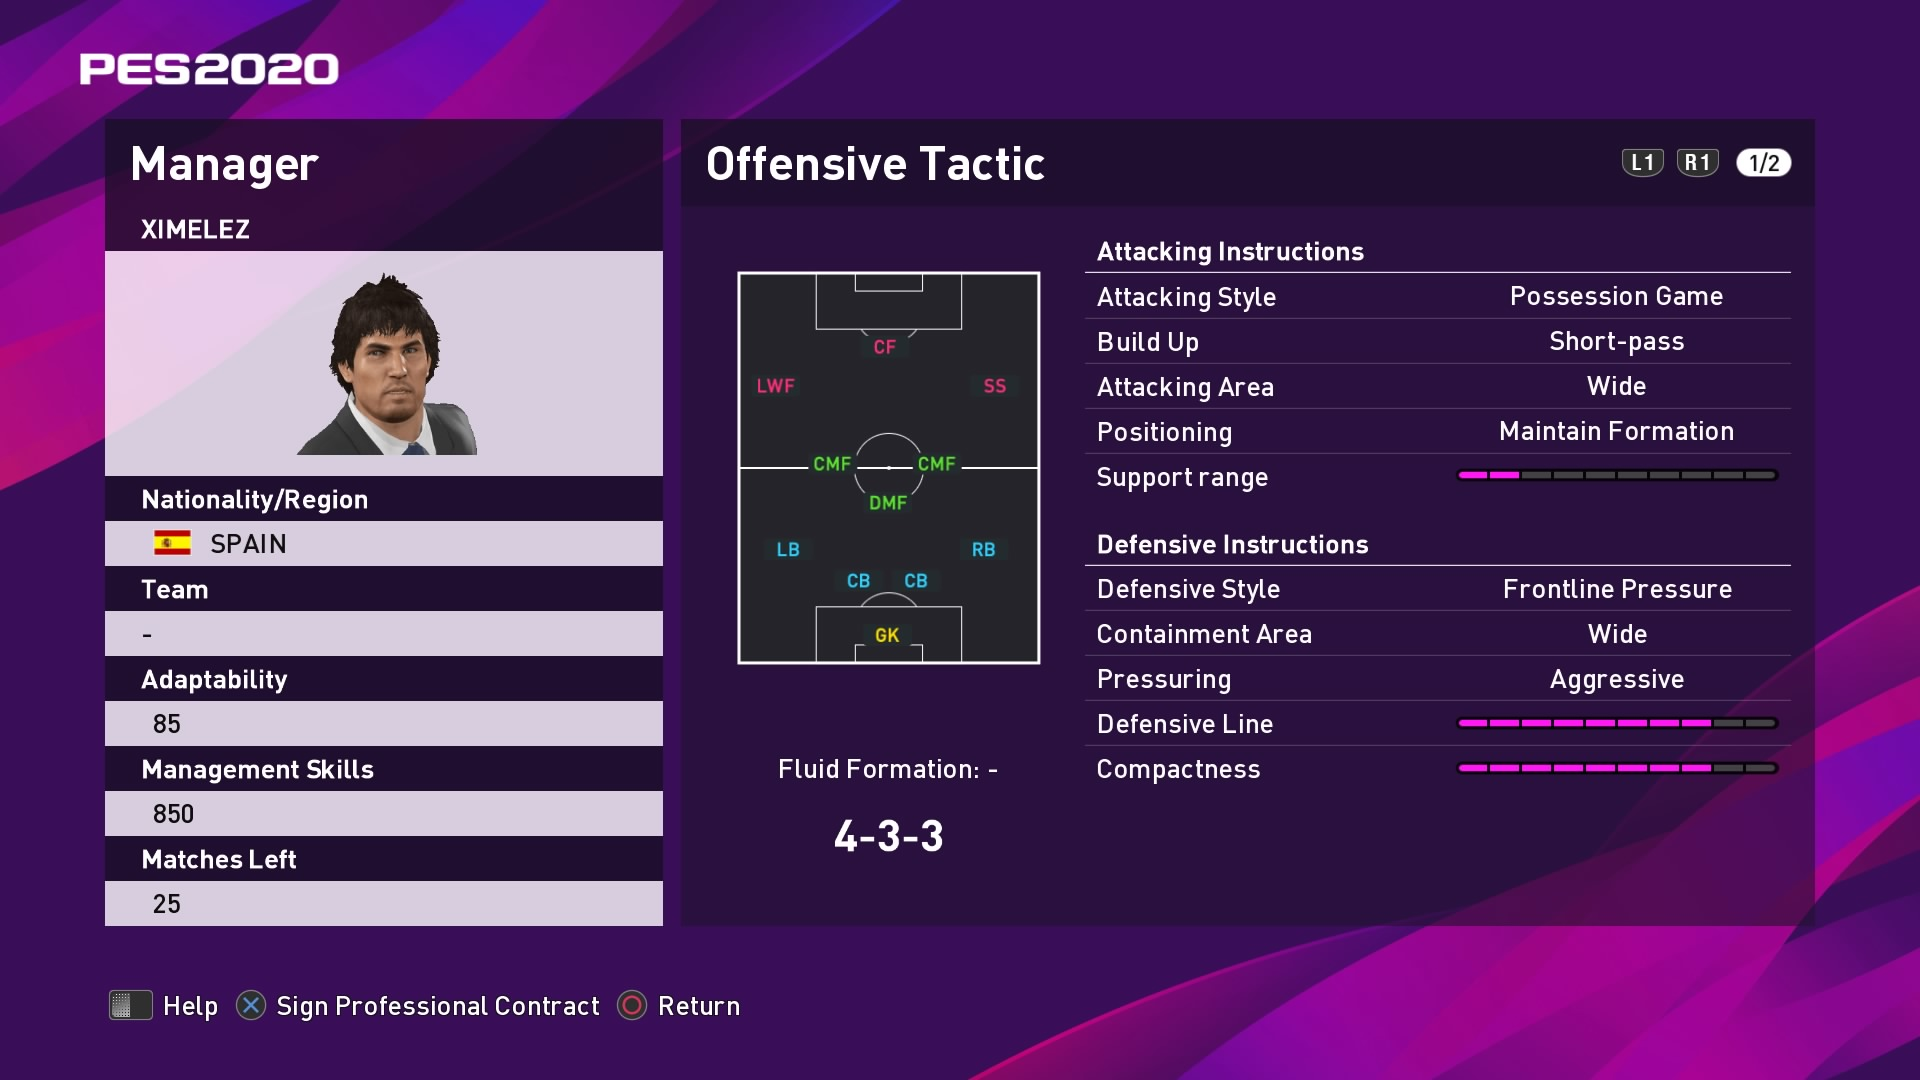 Ximelez Offensive Tactic in PES 2020 myClub